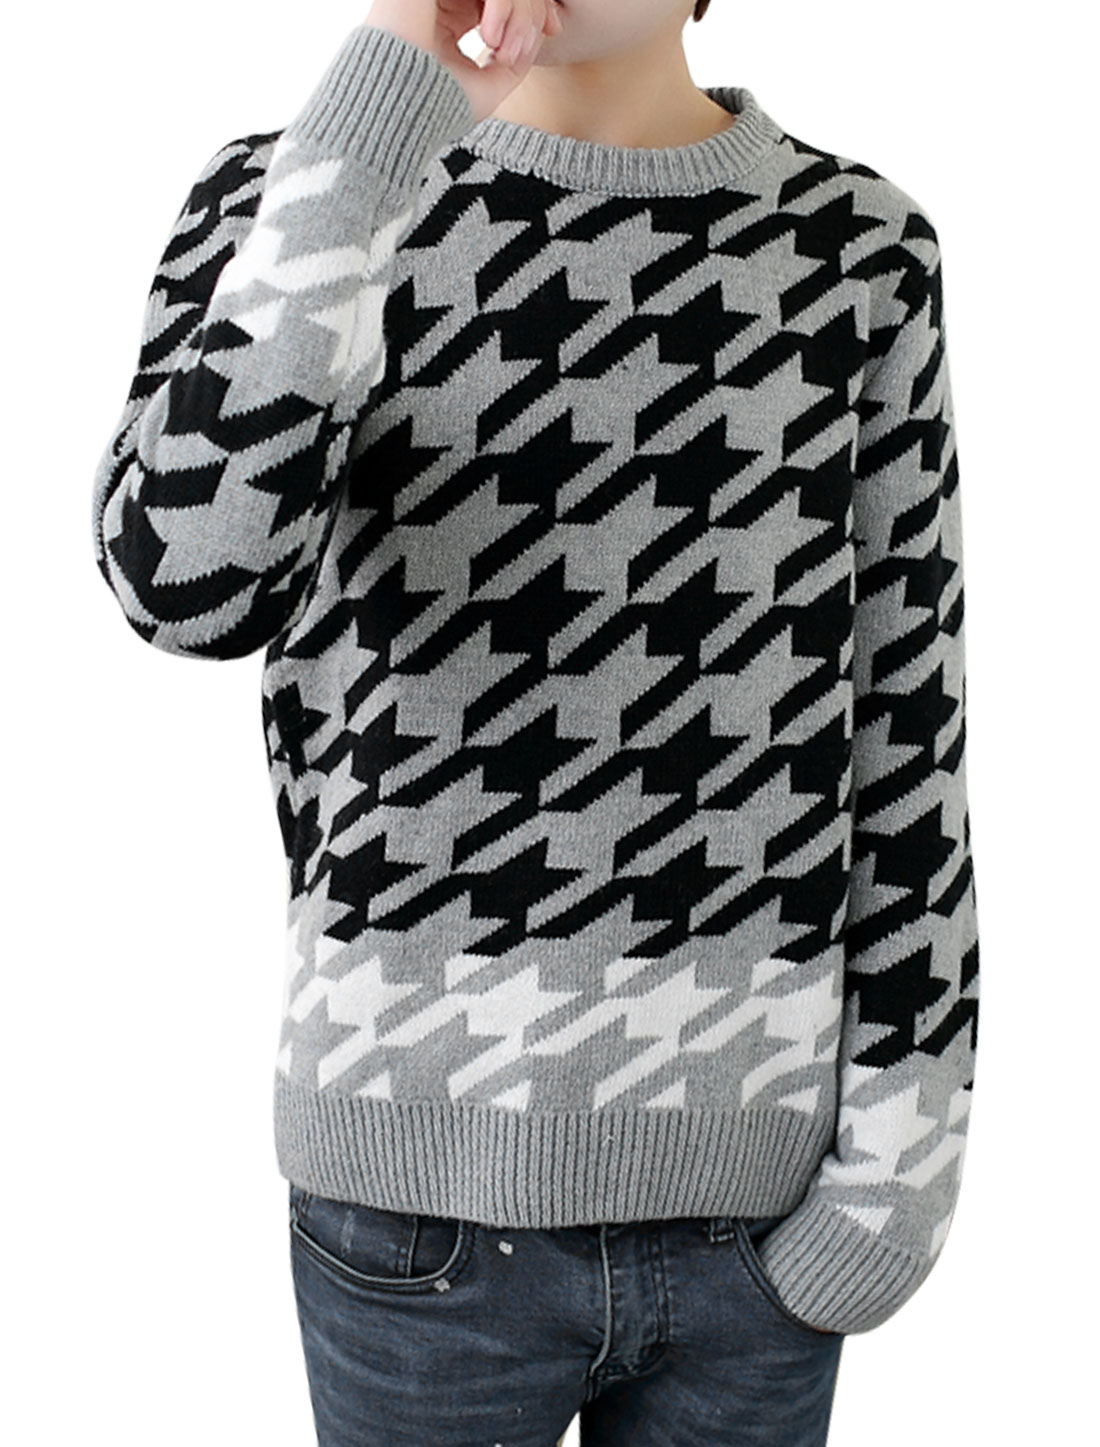 Men Houndstooth Pattern Long Sleeves Casual Sweater Gray Black S